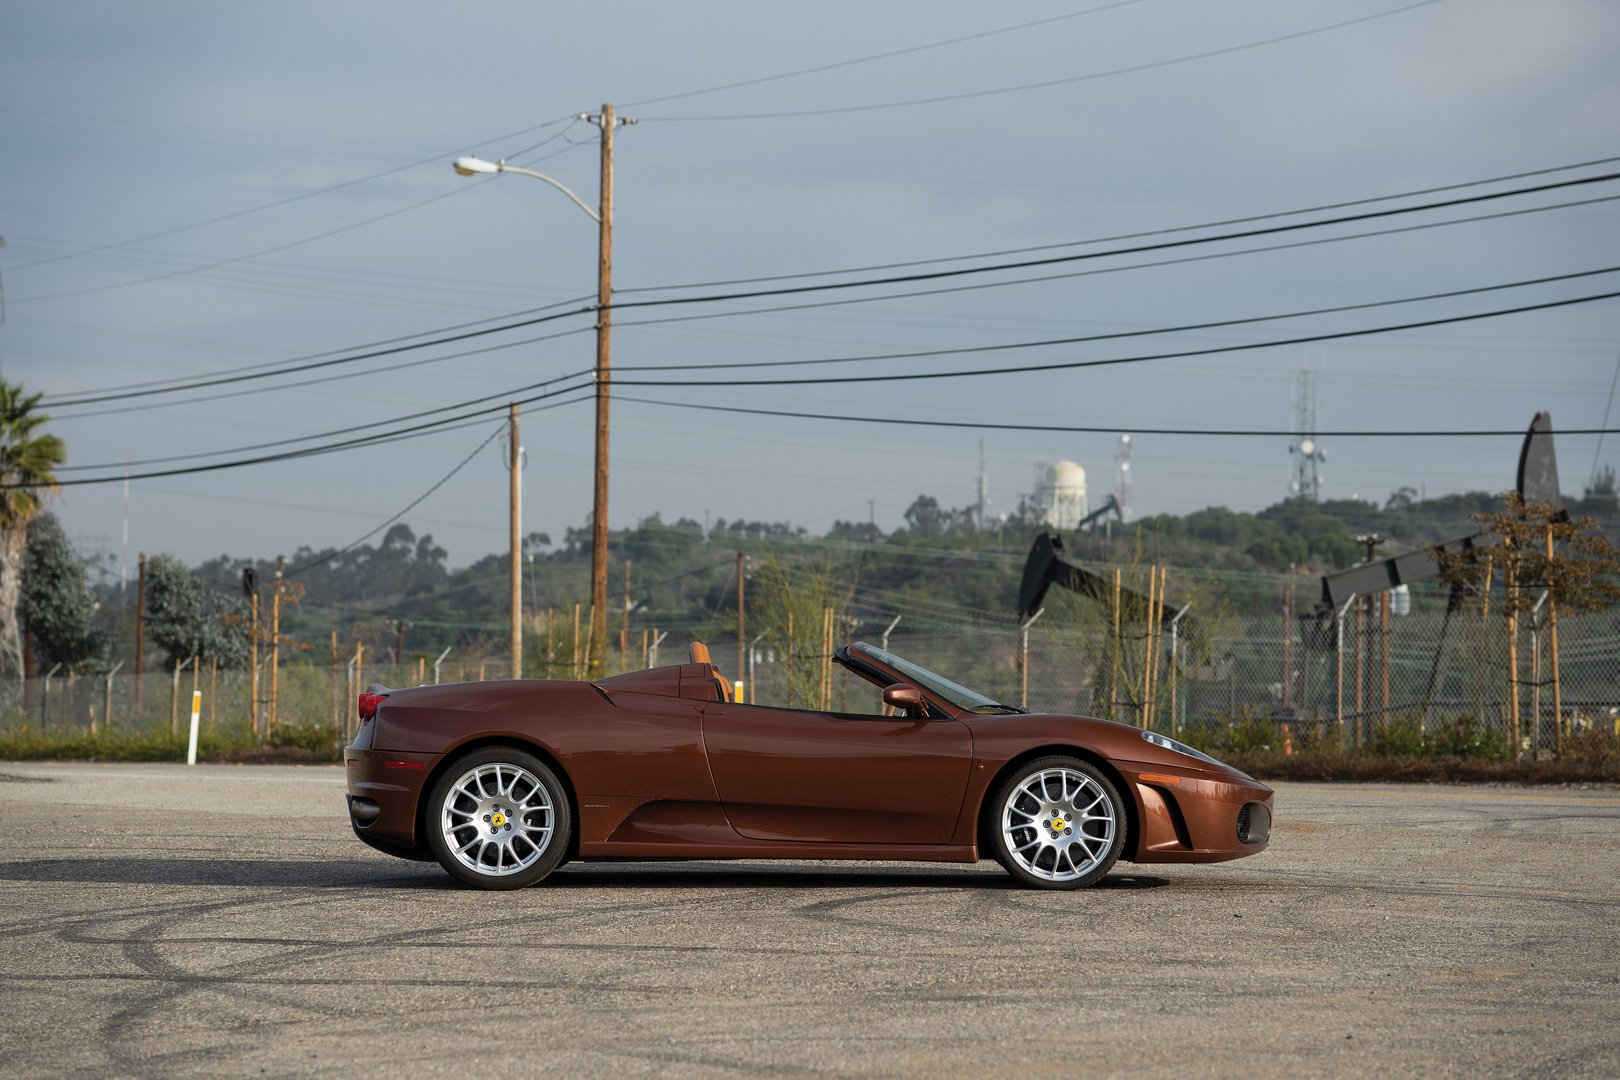 Ferrari F430 Spider in brown Classic Marrone color (3)